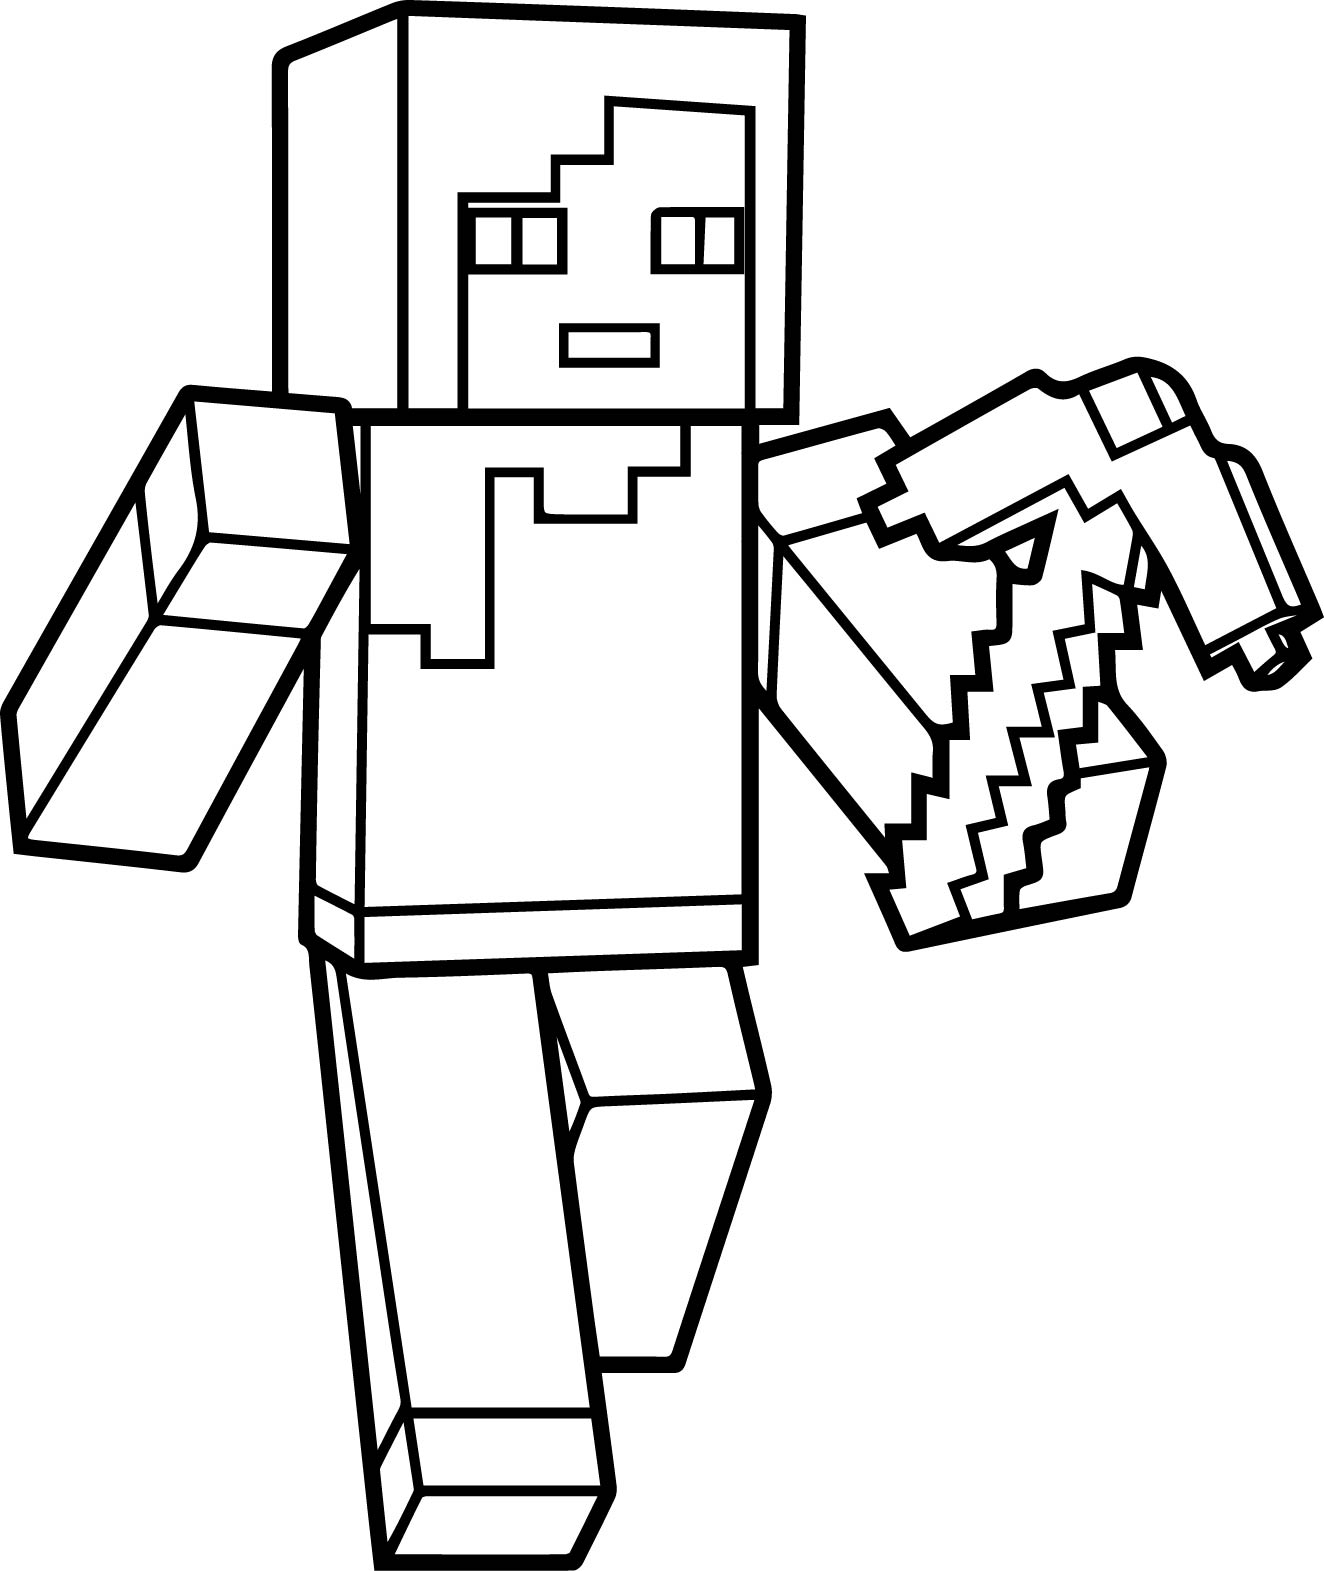 minecraft coloring page minecraft dantdm coloring pages printable coloring pages minecraft page coloring